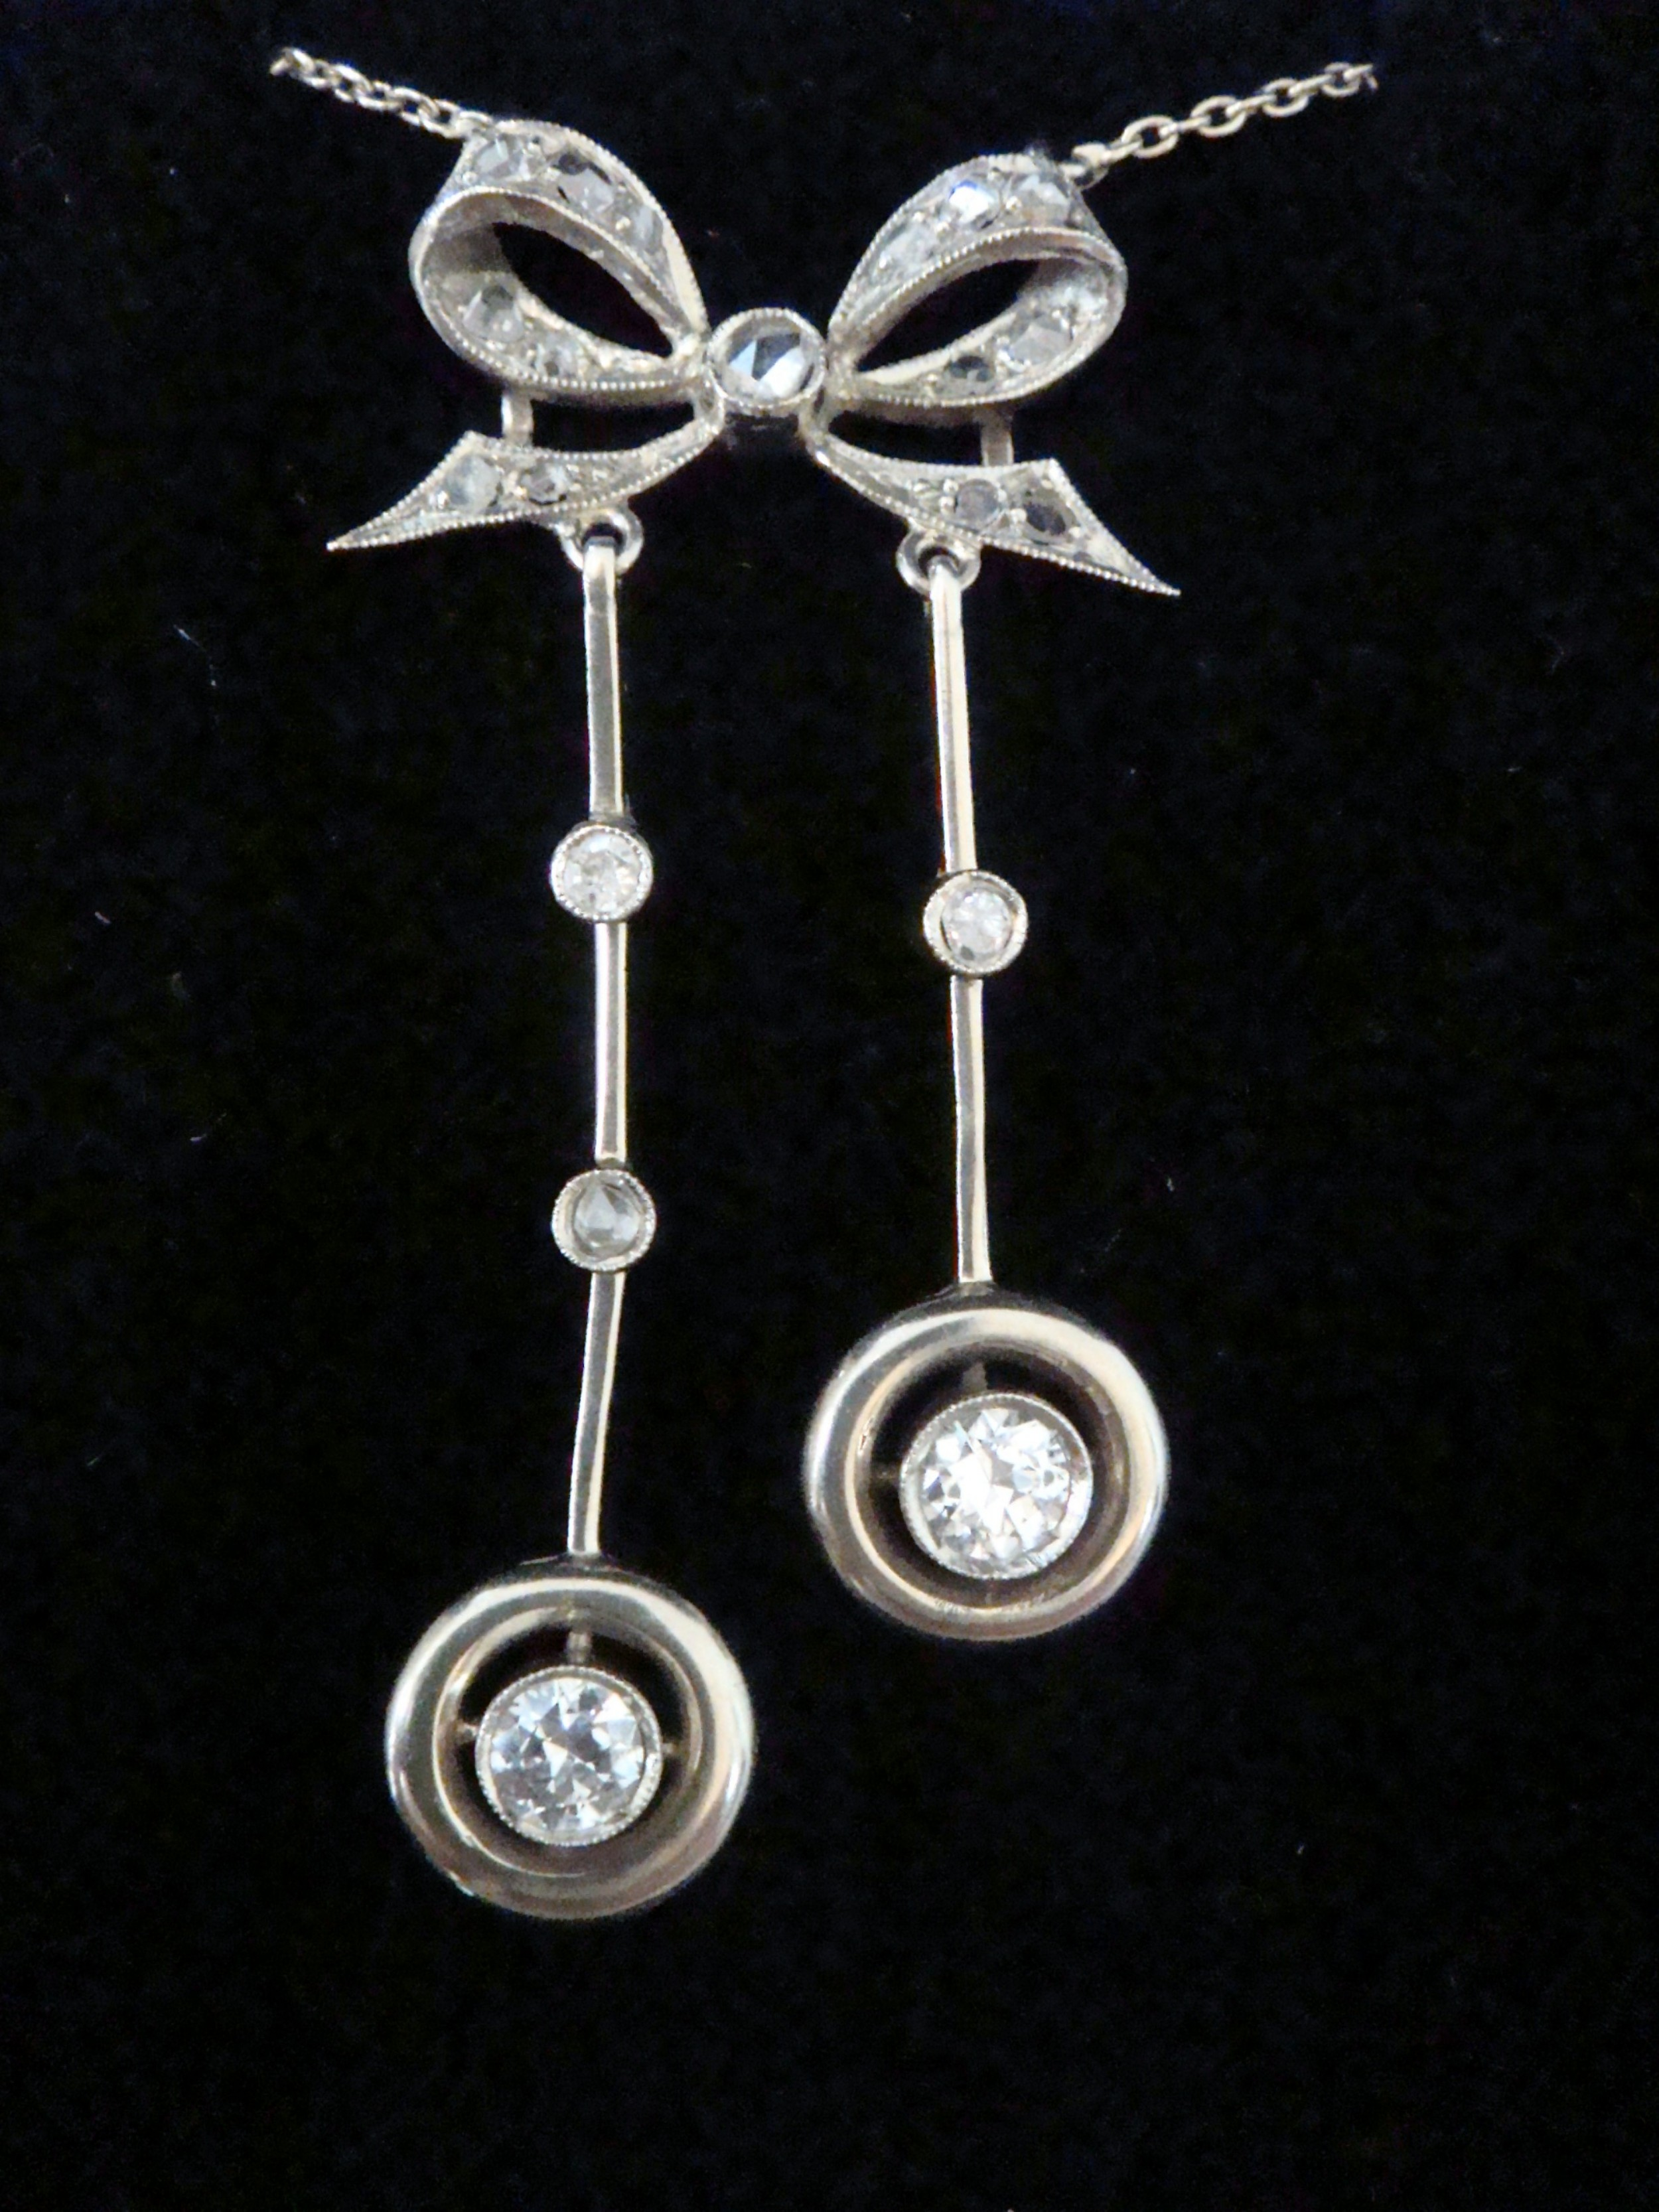 french edwardian 18ct white gold transitional and rose cut diamond lavaliere necklace